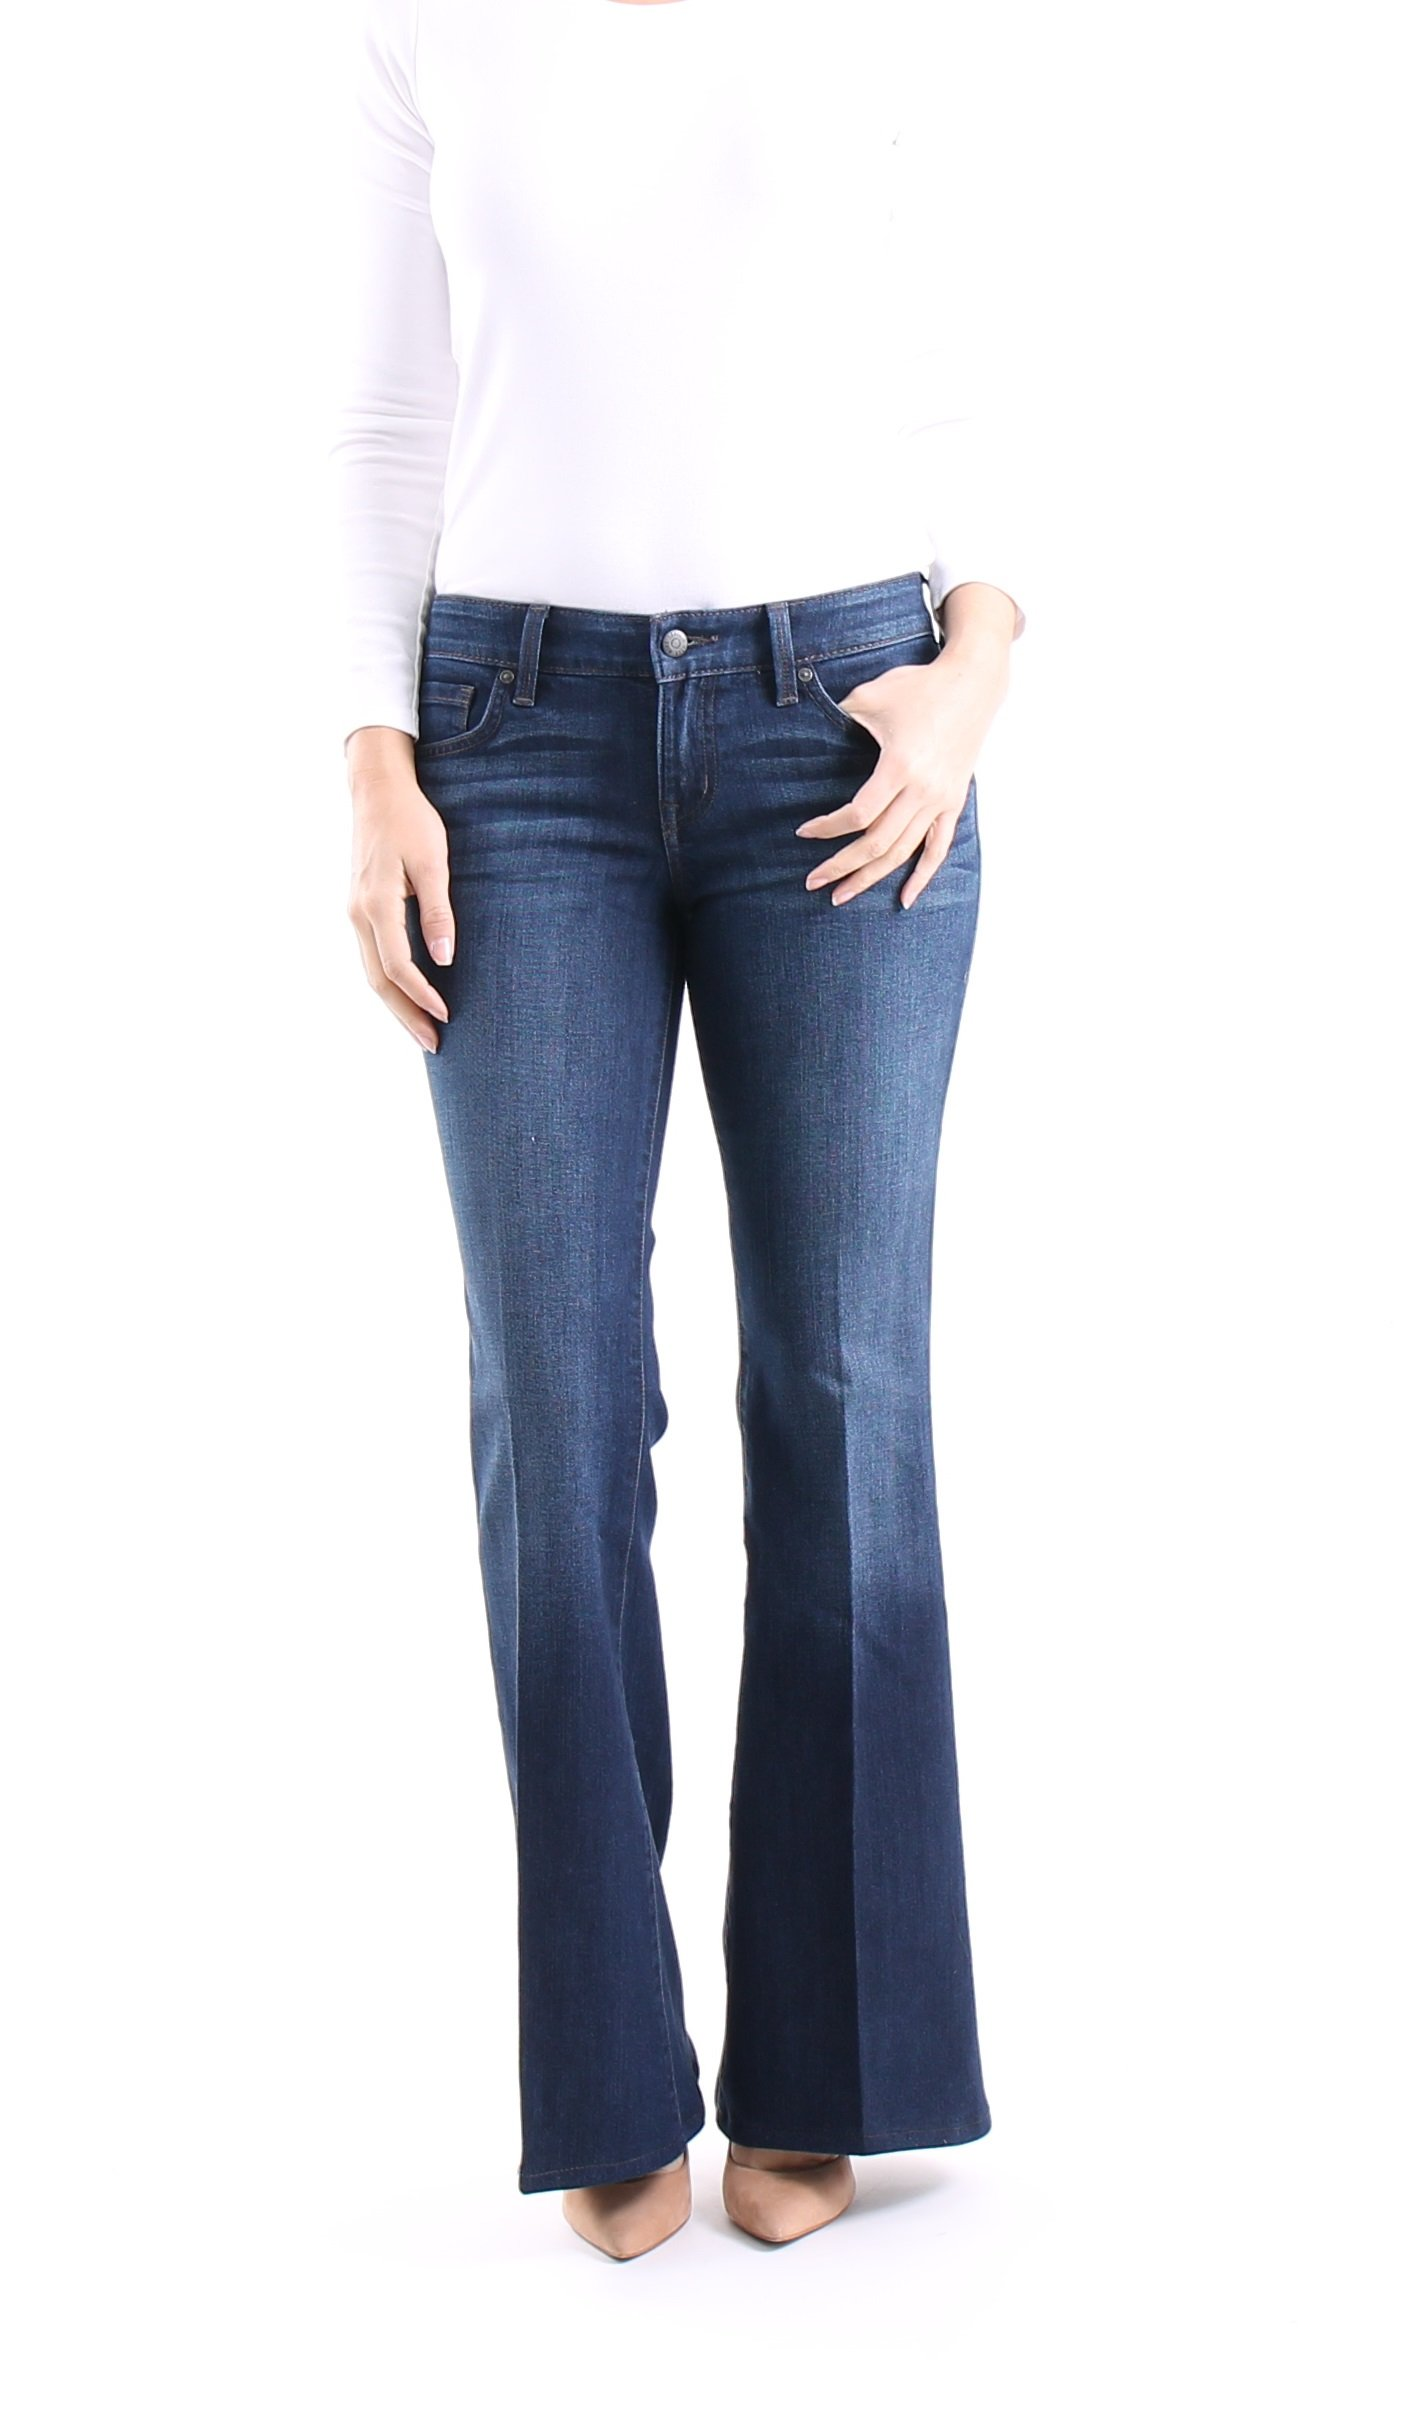 Level 99 Jeans Vintage Flare Denim Lets You Look Slimmer, Feels Amazing Just Like a Custom Fitted Women's Jean